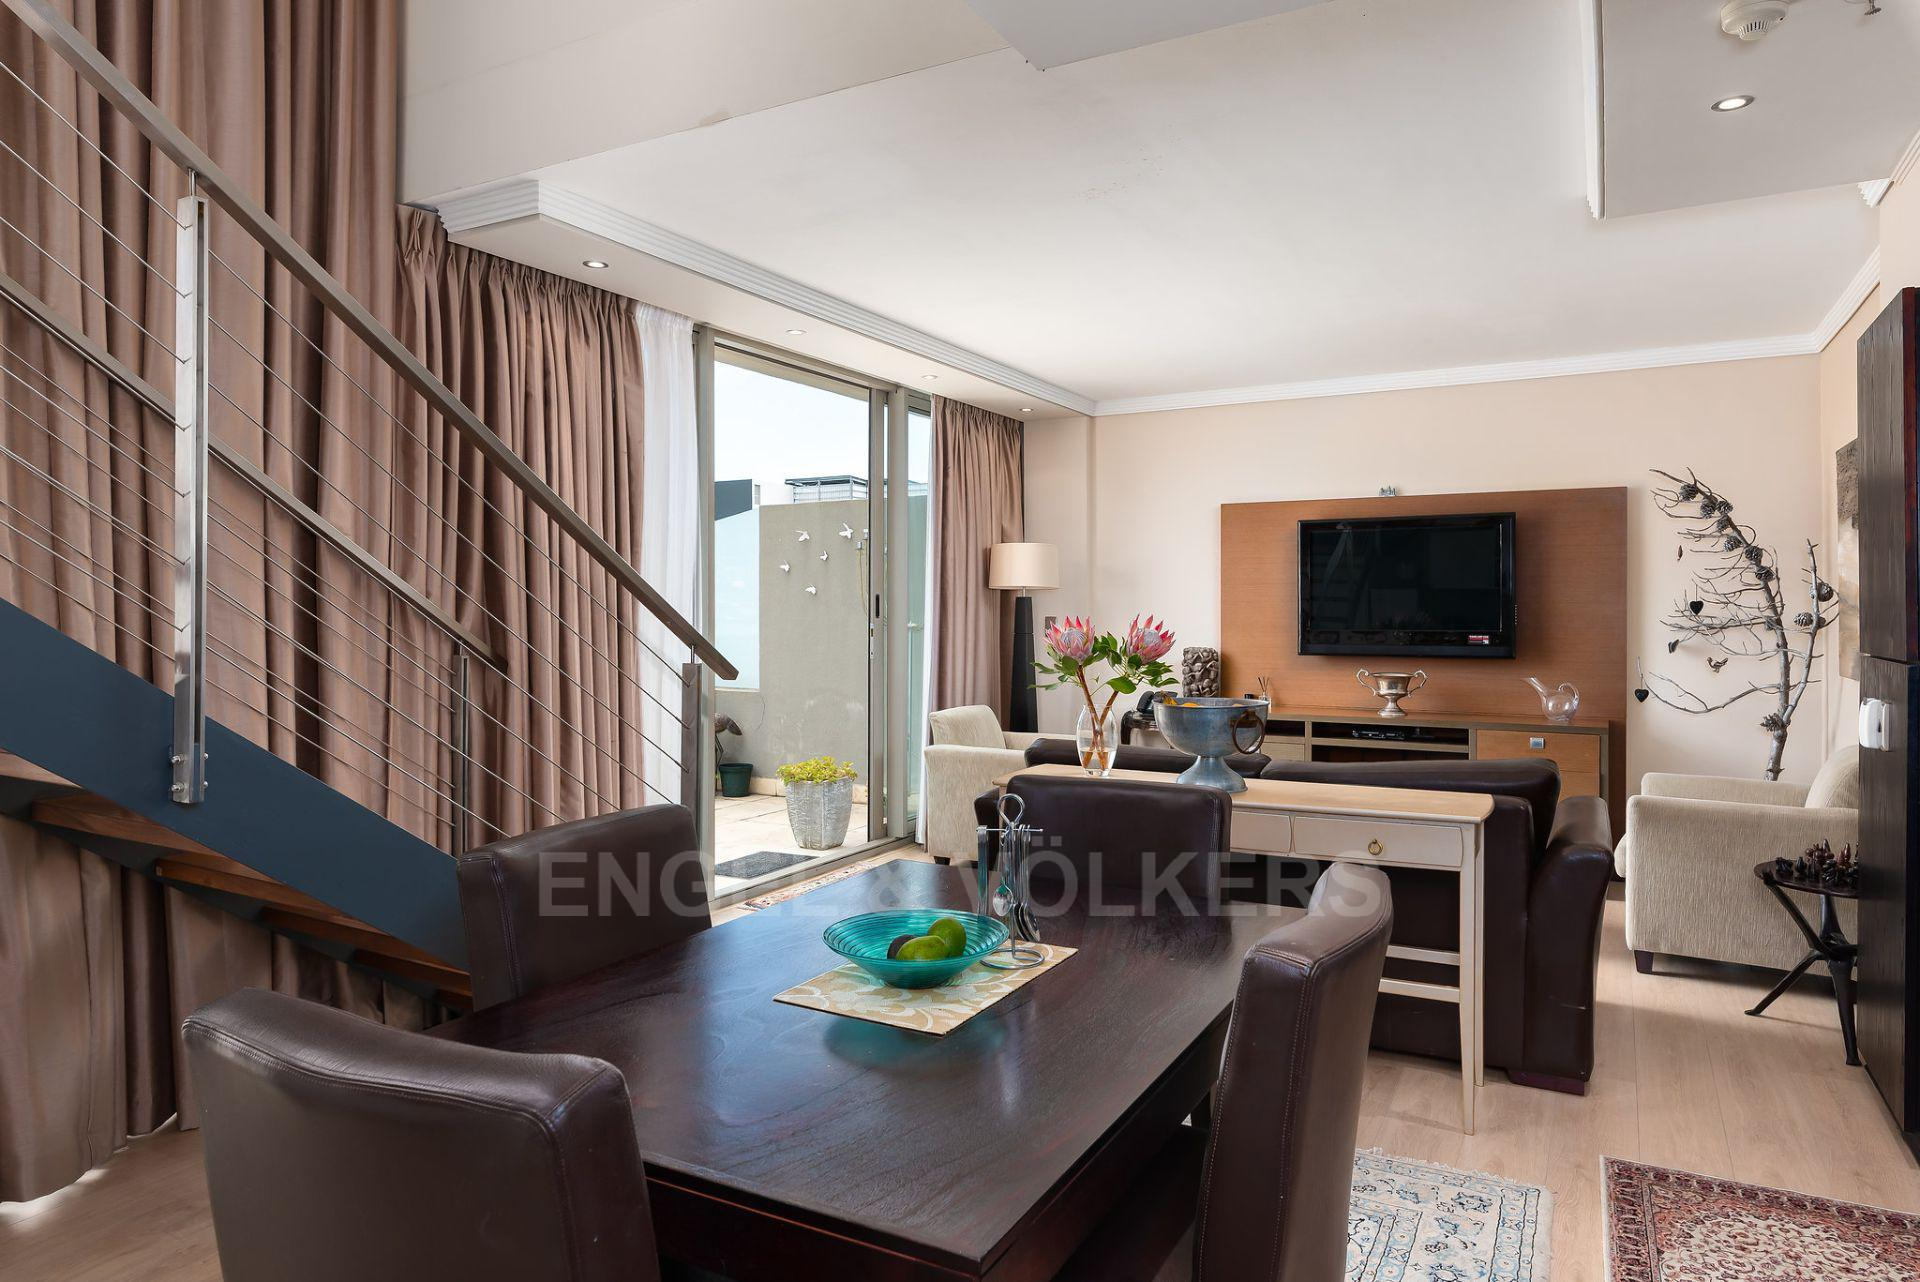 Apartment in City Centre - lounge and kitchen.jpg